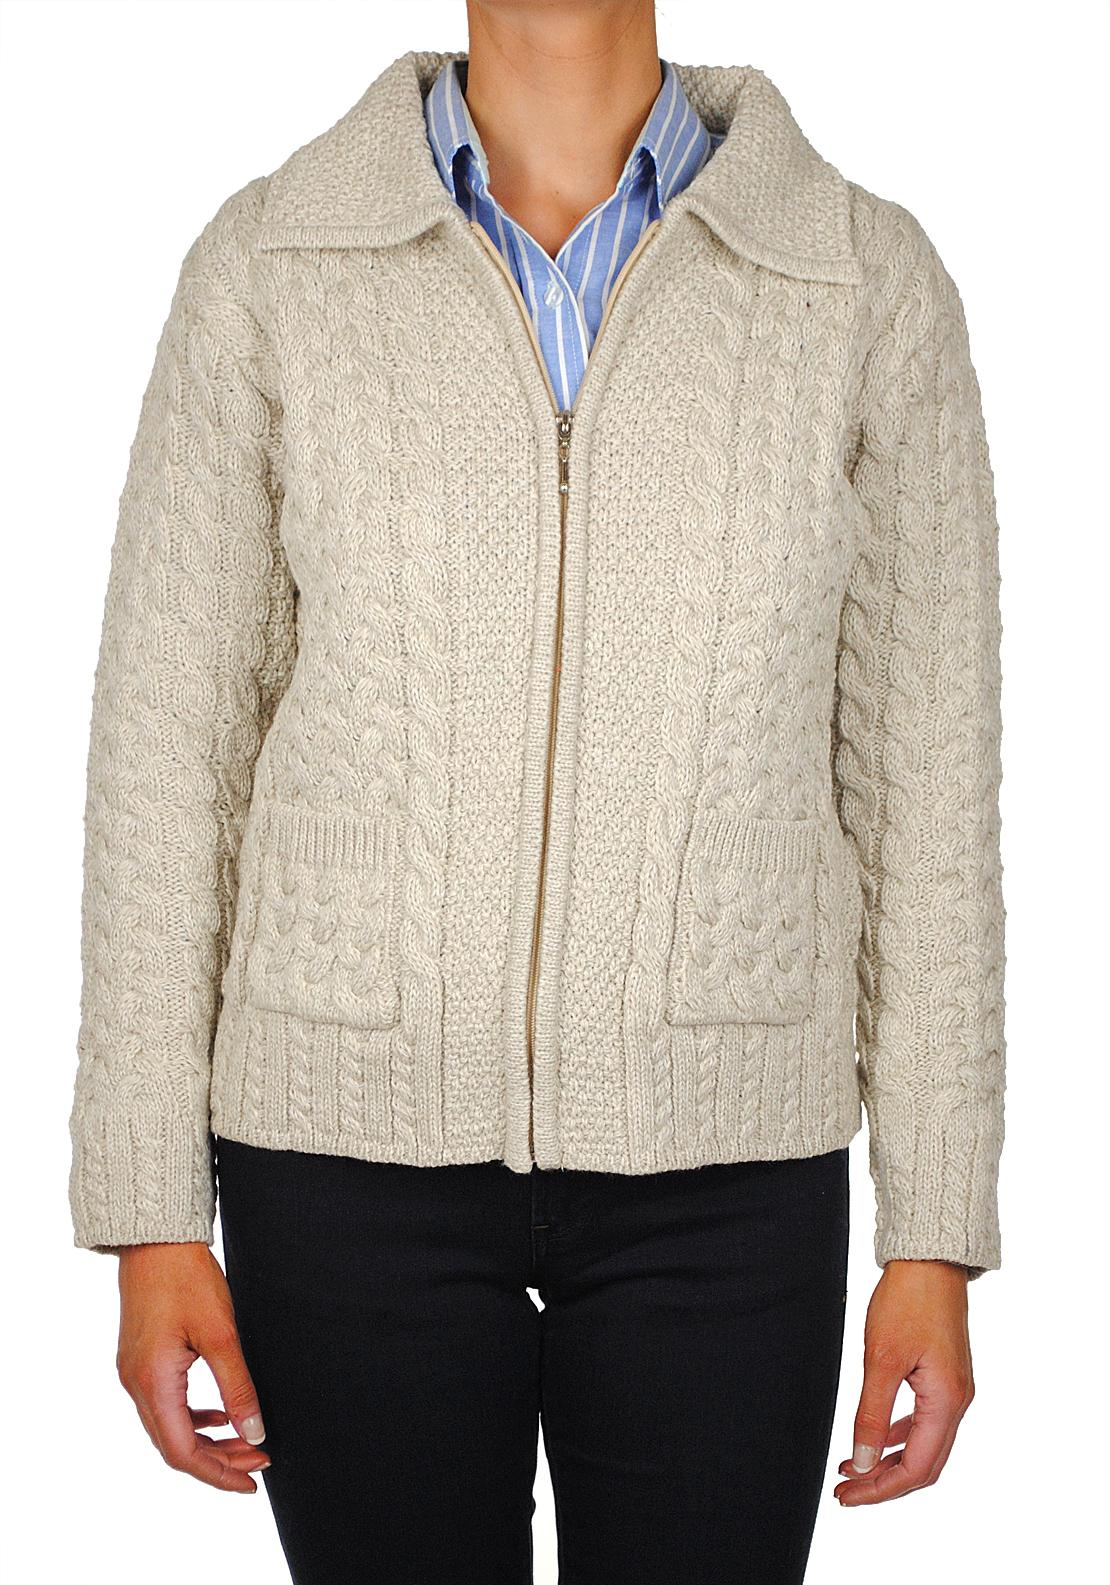 Shades of Aran Ireland Traditional Knit Cardigan, Oatmeal